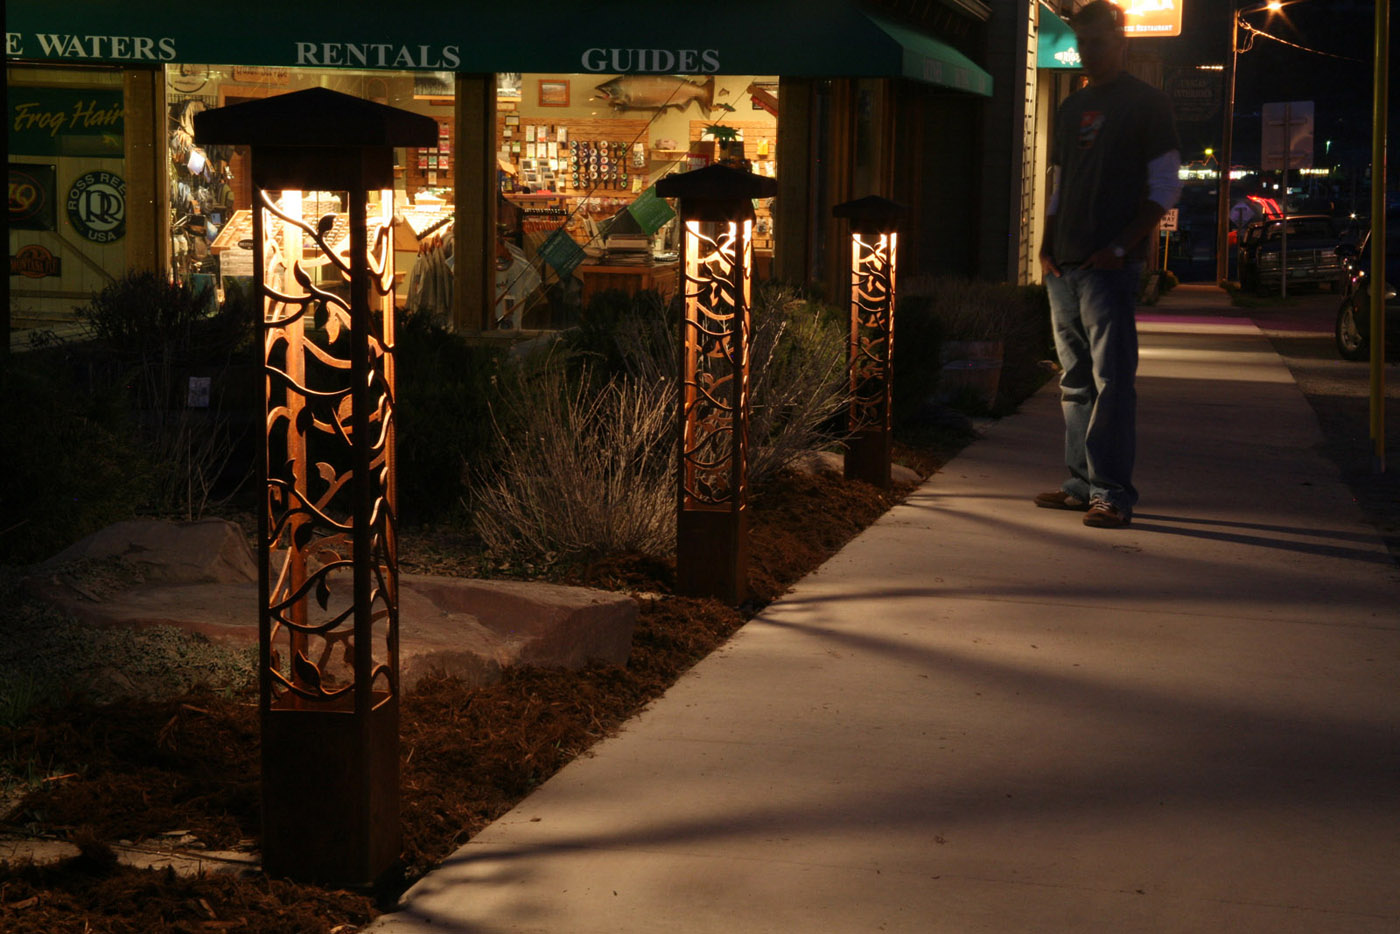 artistic outdoor lighting. with all of the beauty and art you also get top quality outdoor lighting that will meet practical needs for nighttime enjoyment artistic o